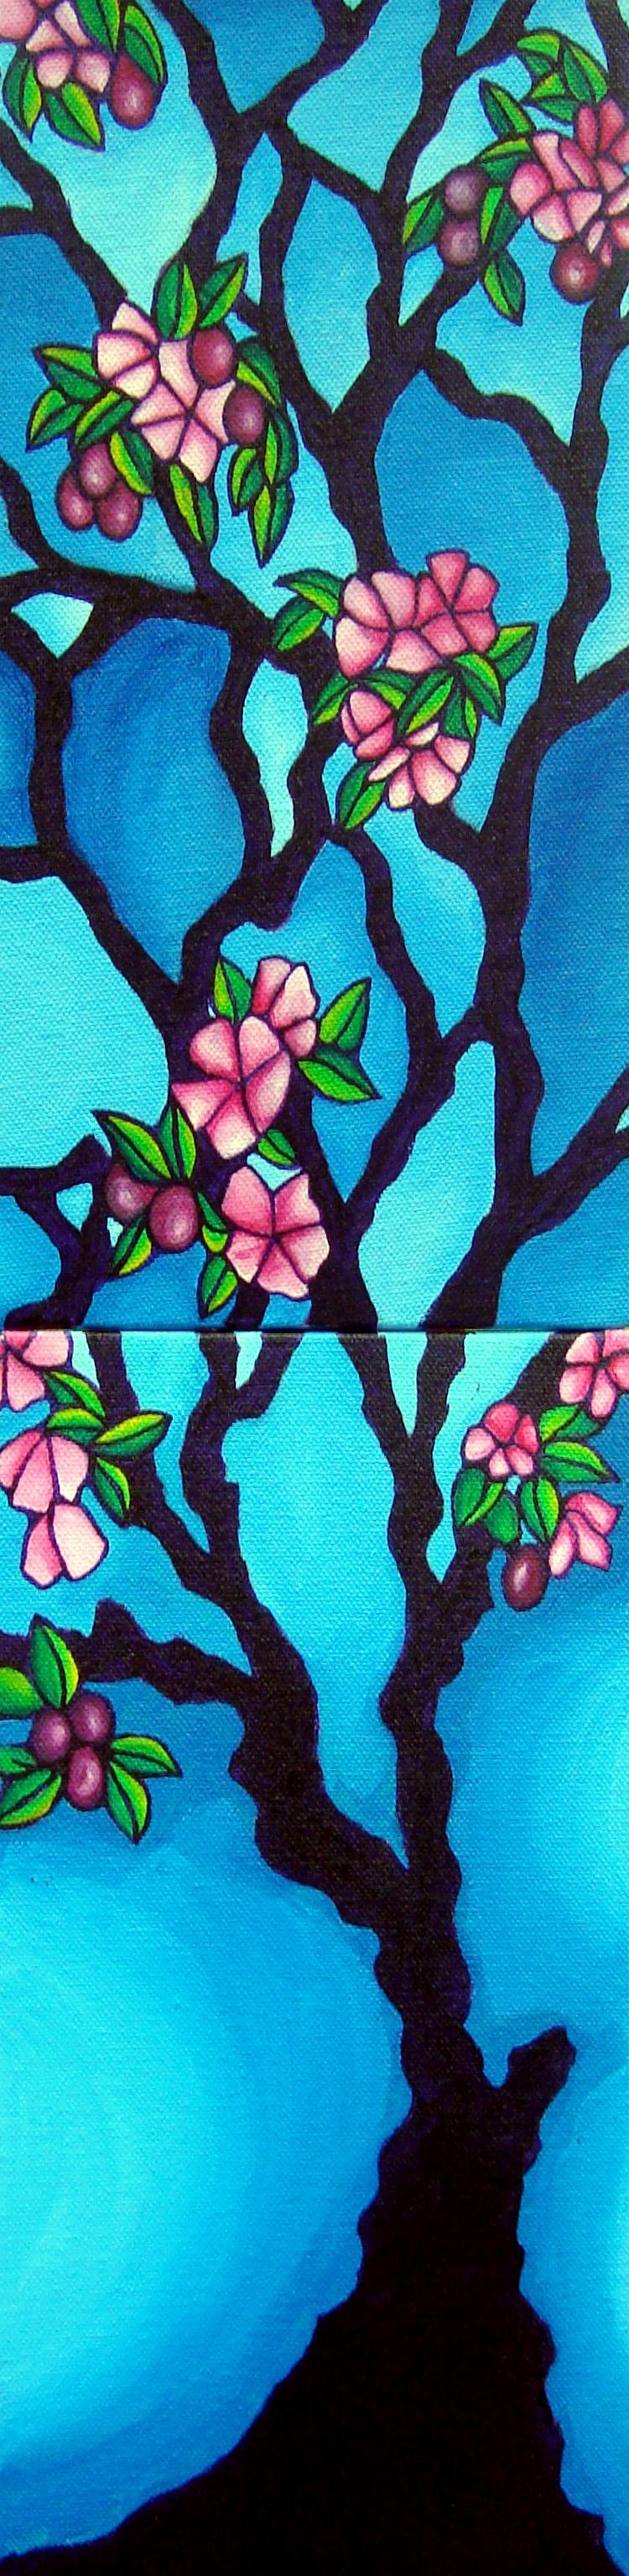 Plum Tree, 2 panels